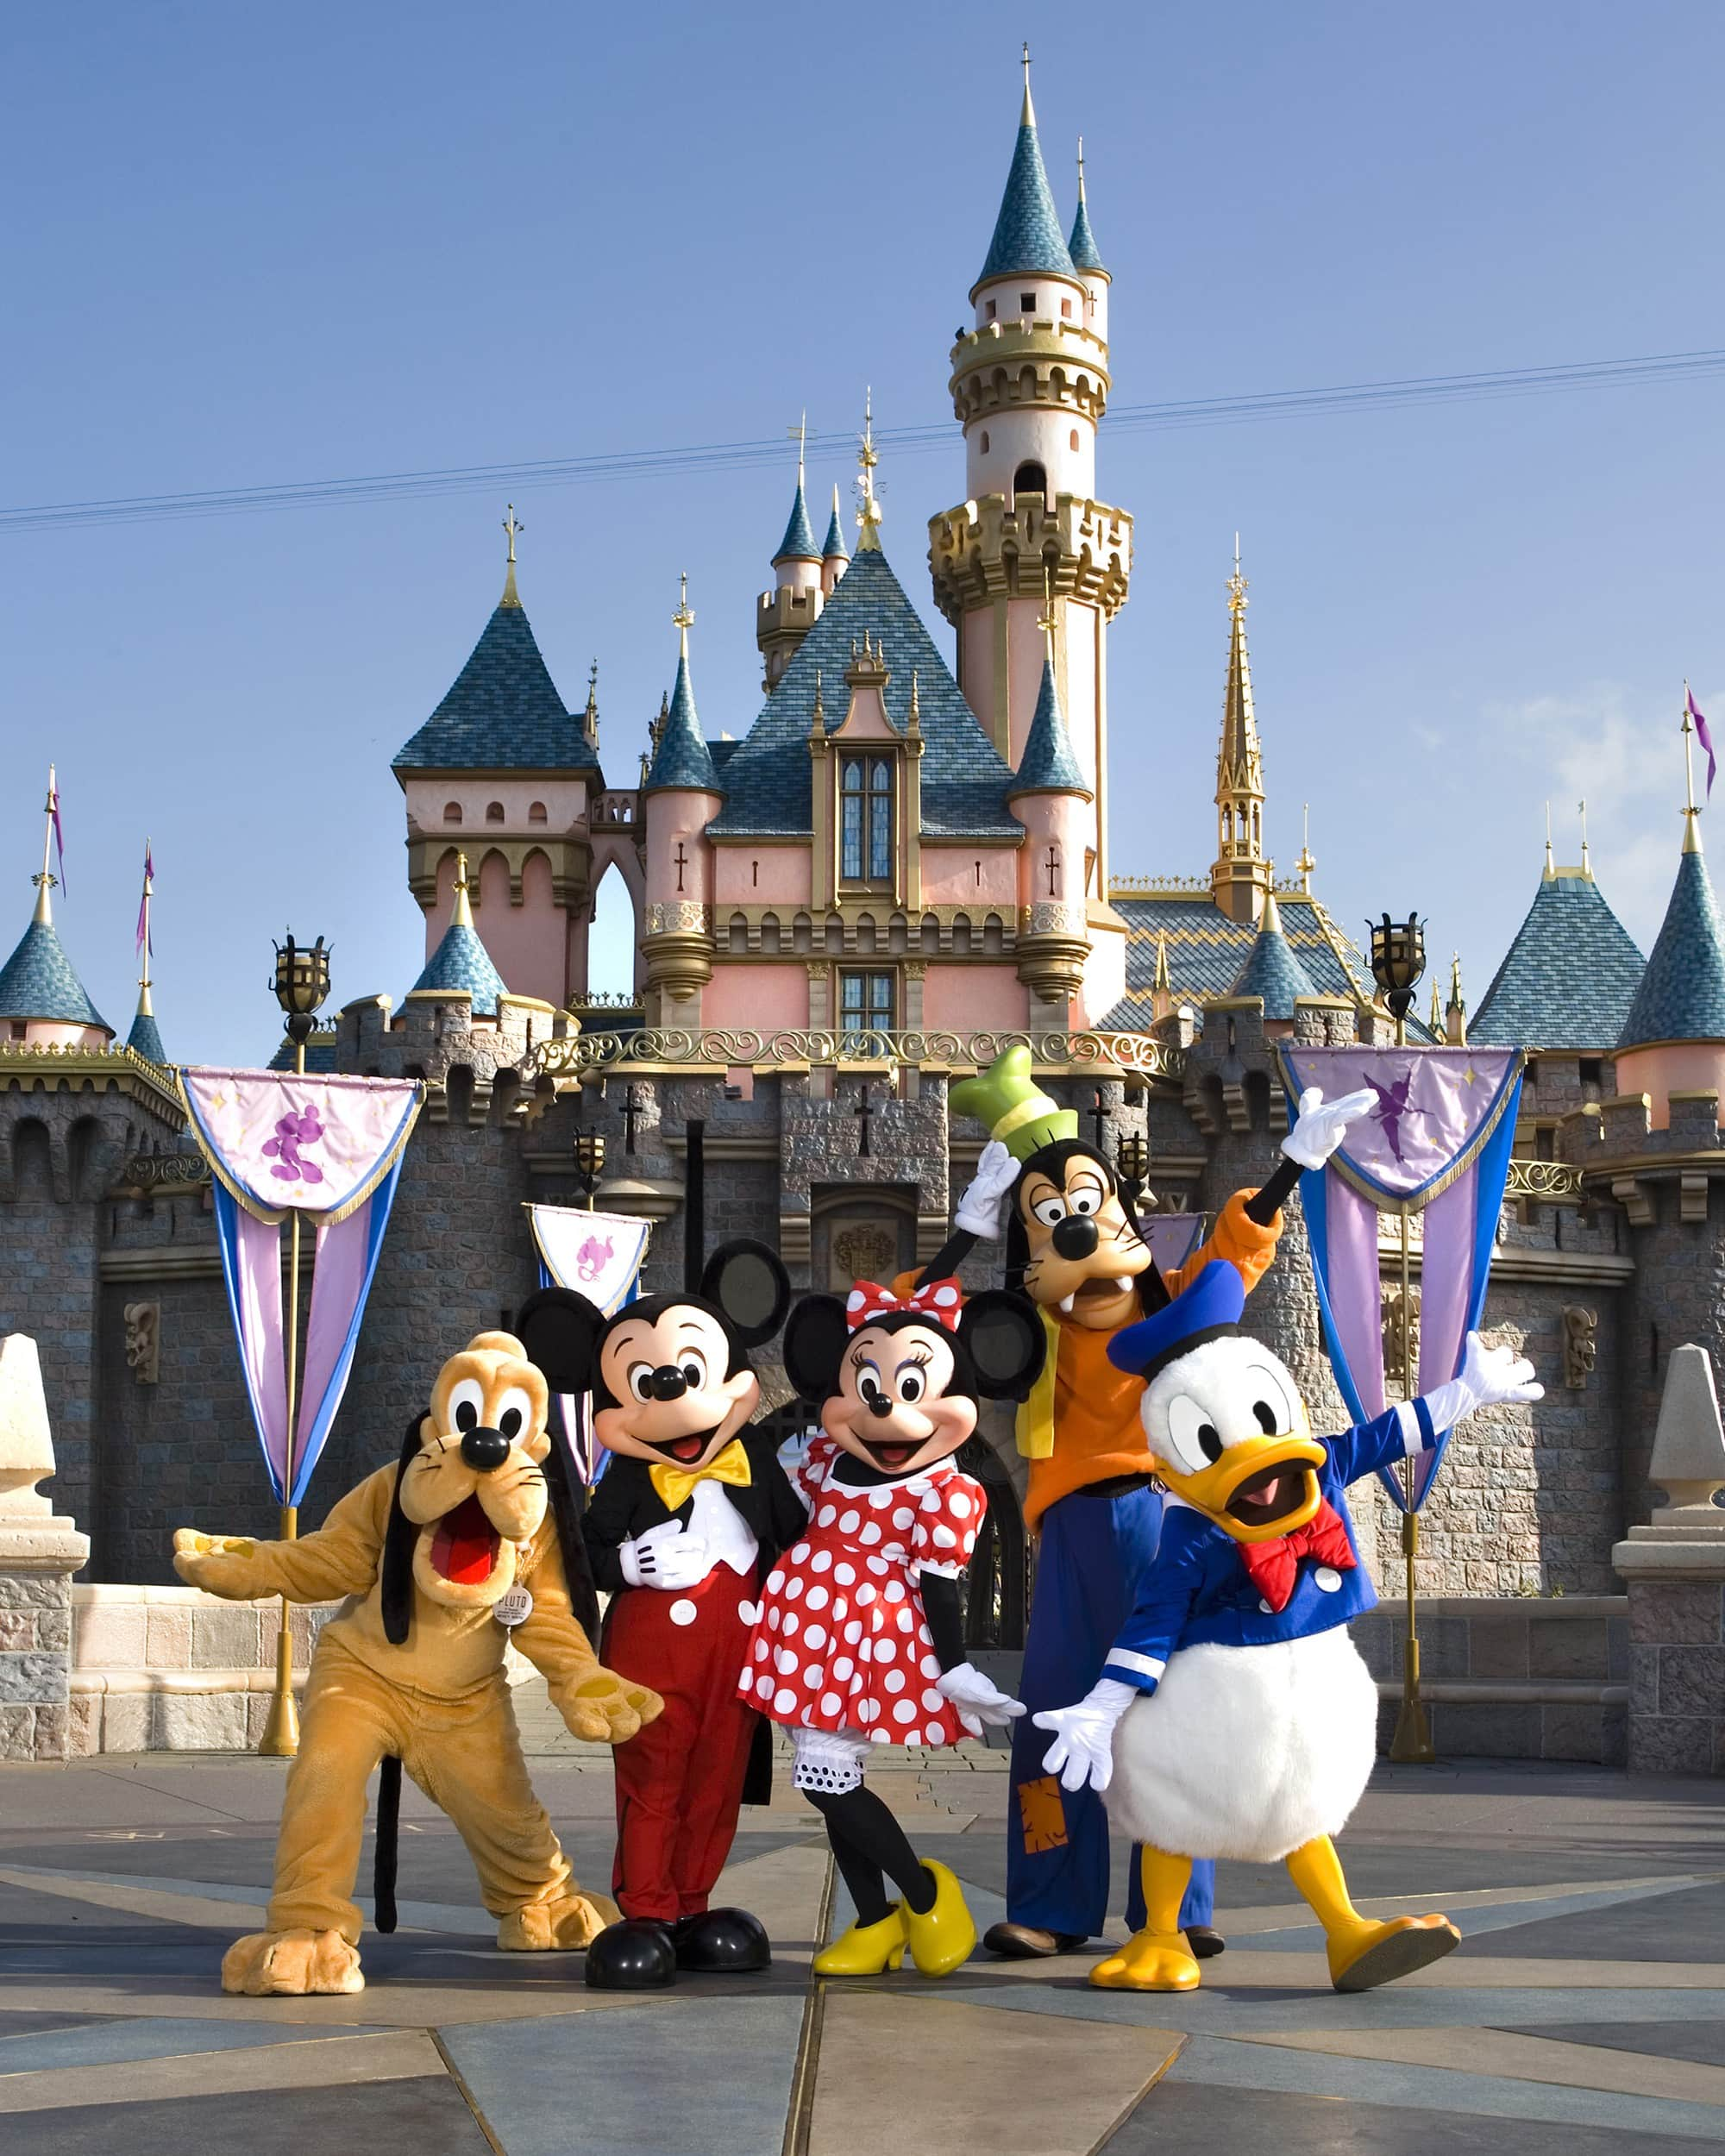 Mickey Mouse and friends in front of Sleeping Beauty's Castle at Disneyland